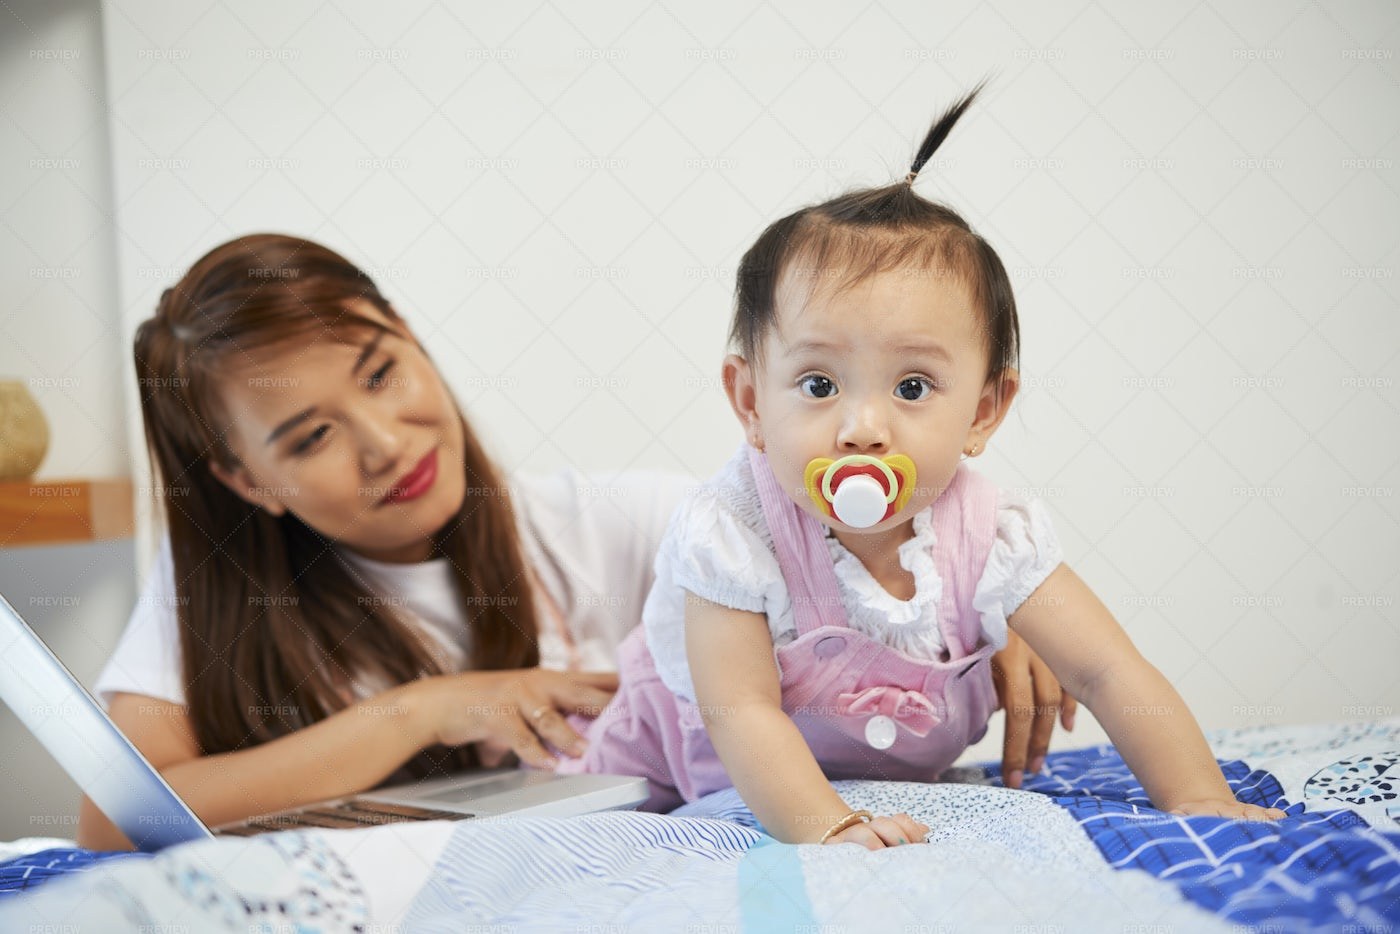 Crawling Baby With Pacifier: Stock Photos